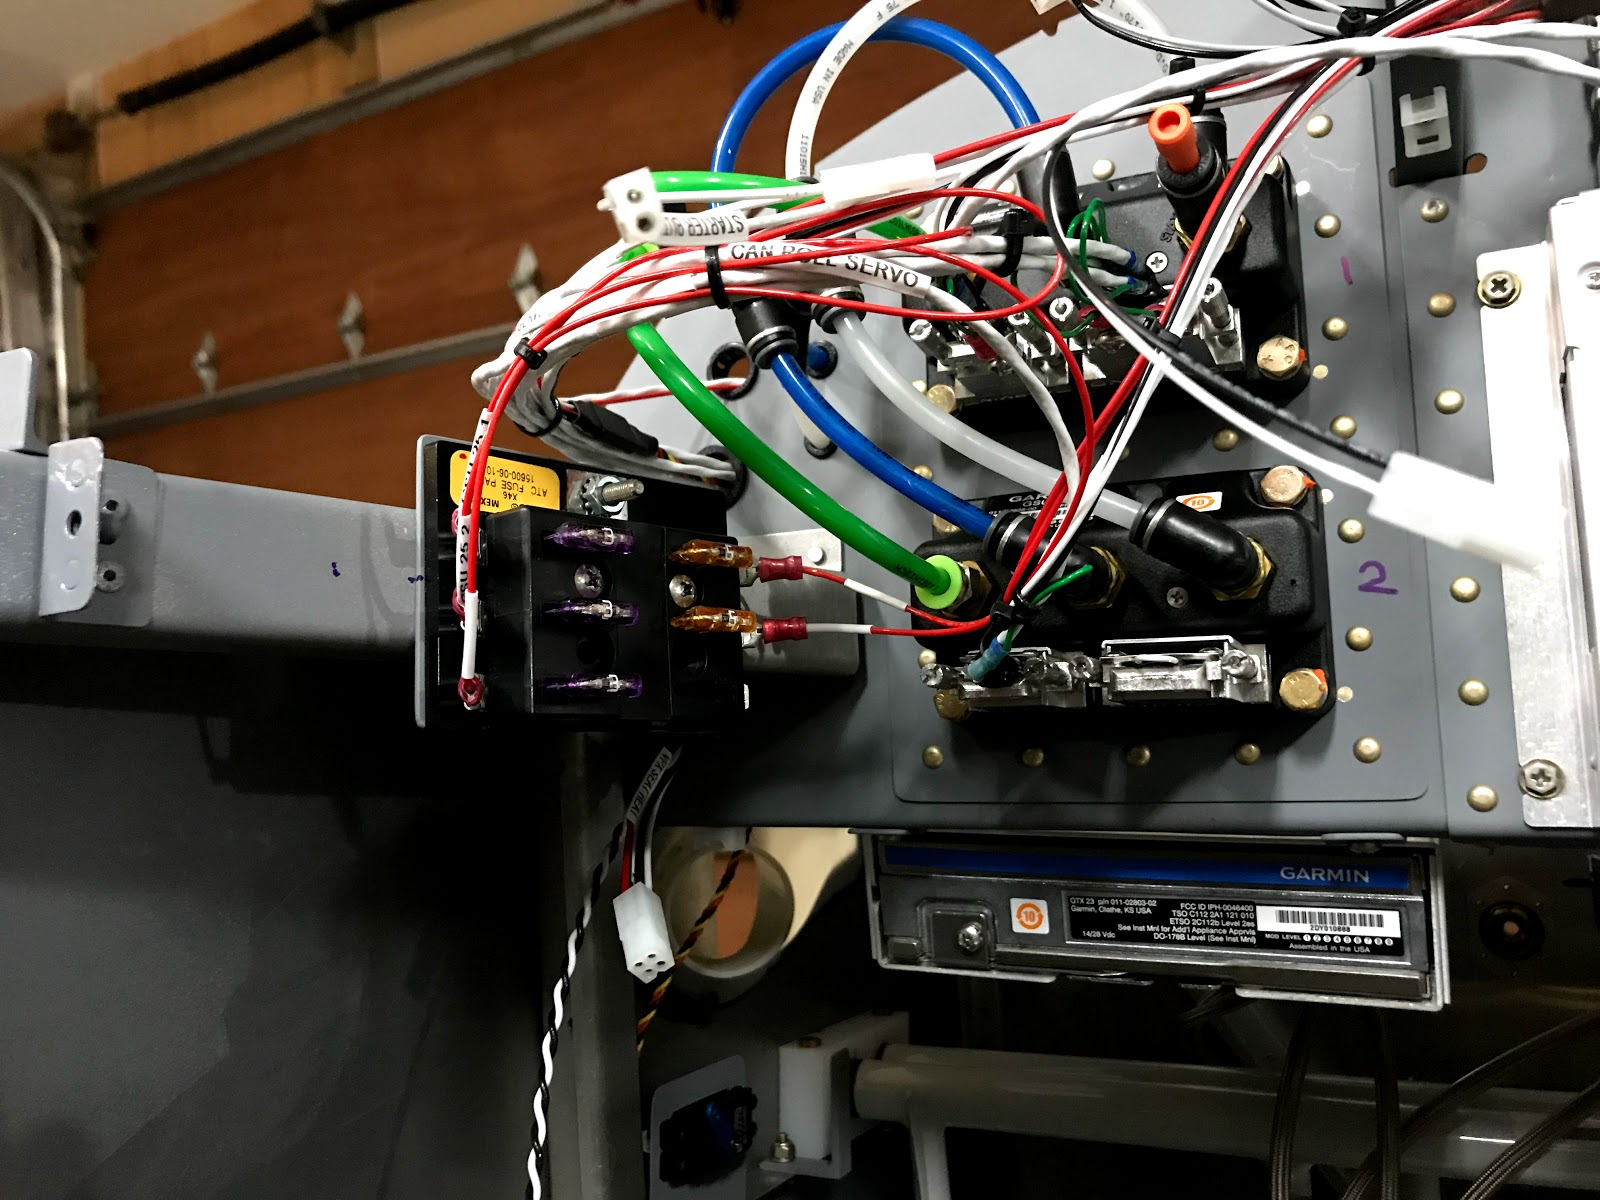 hight resolution of all avionics wiring in place